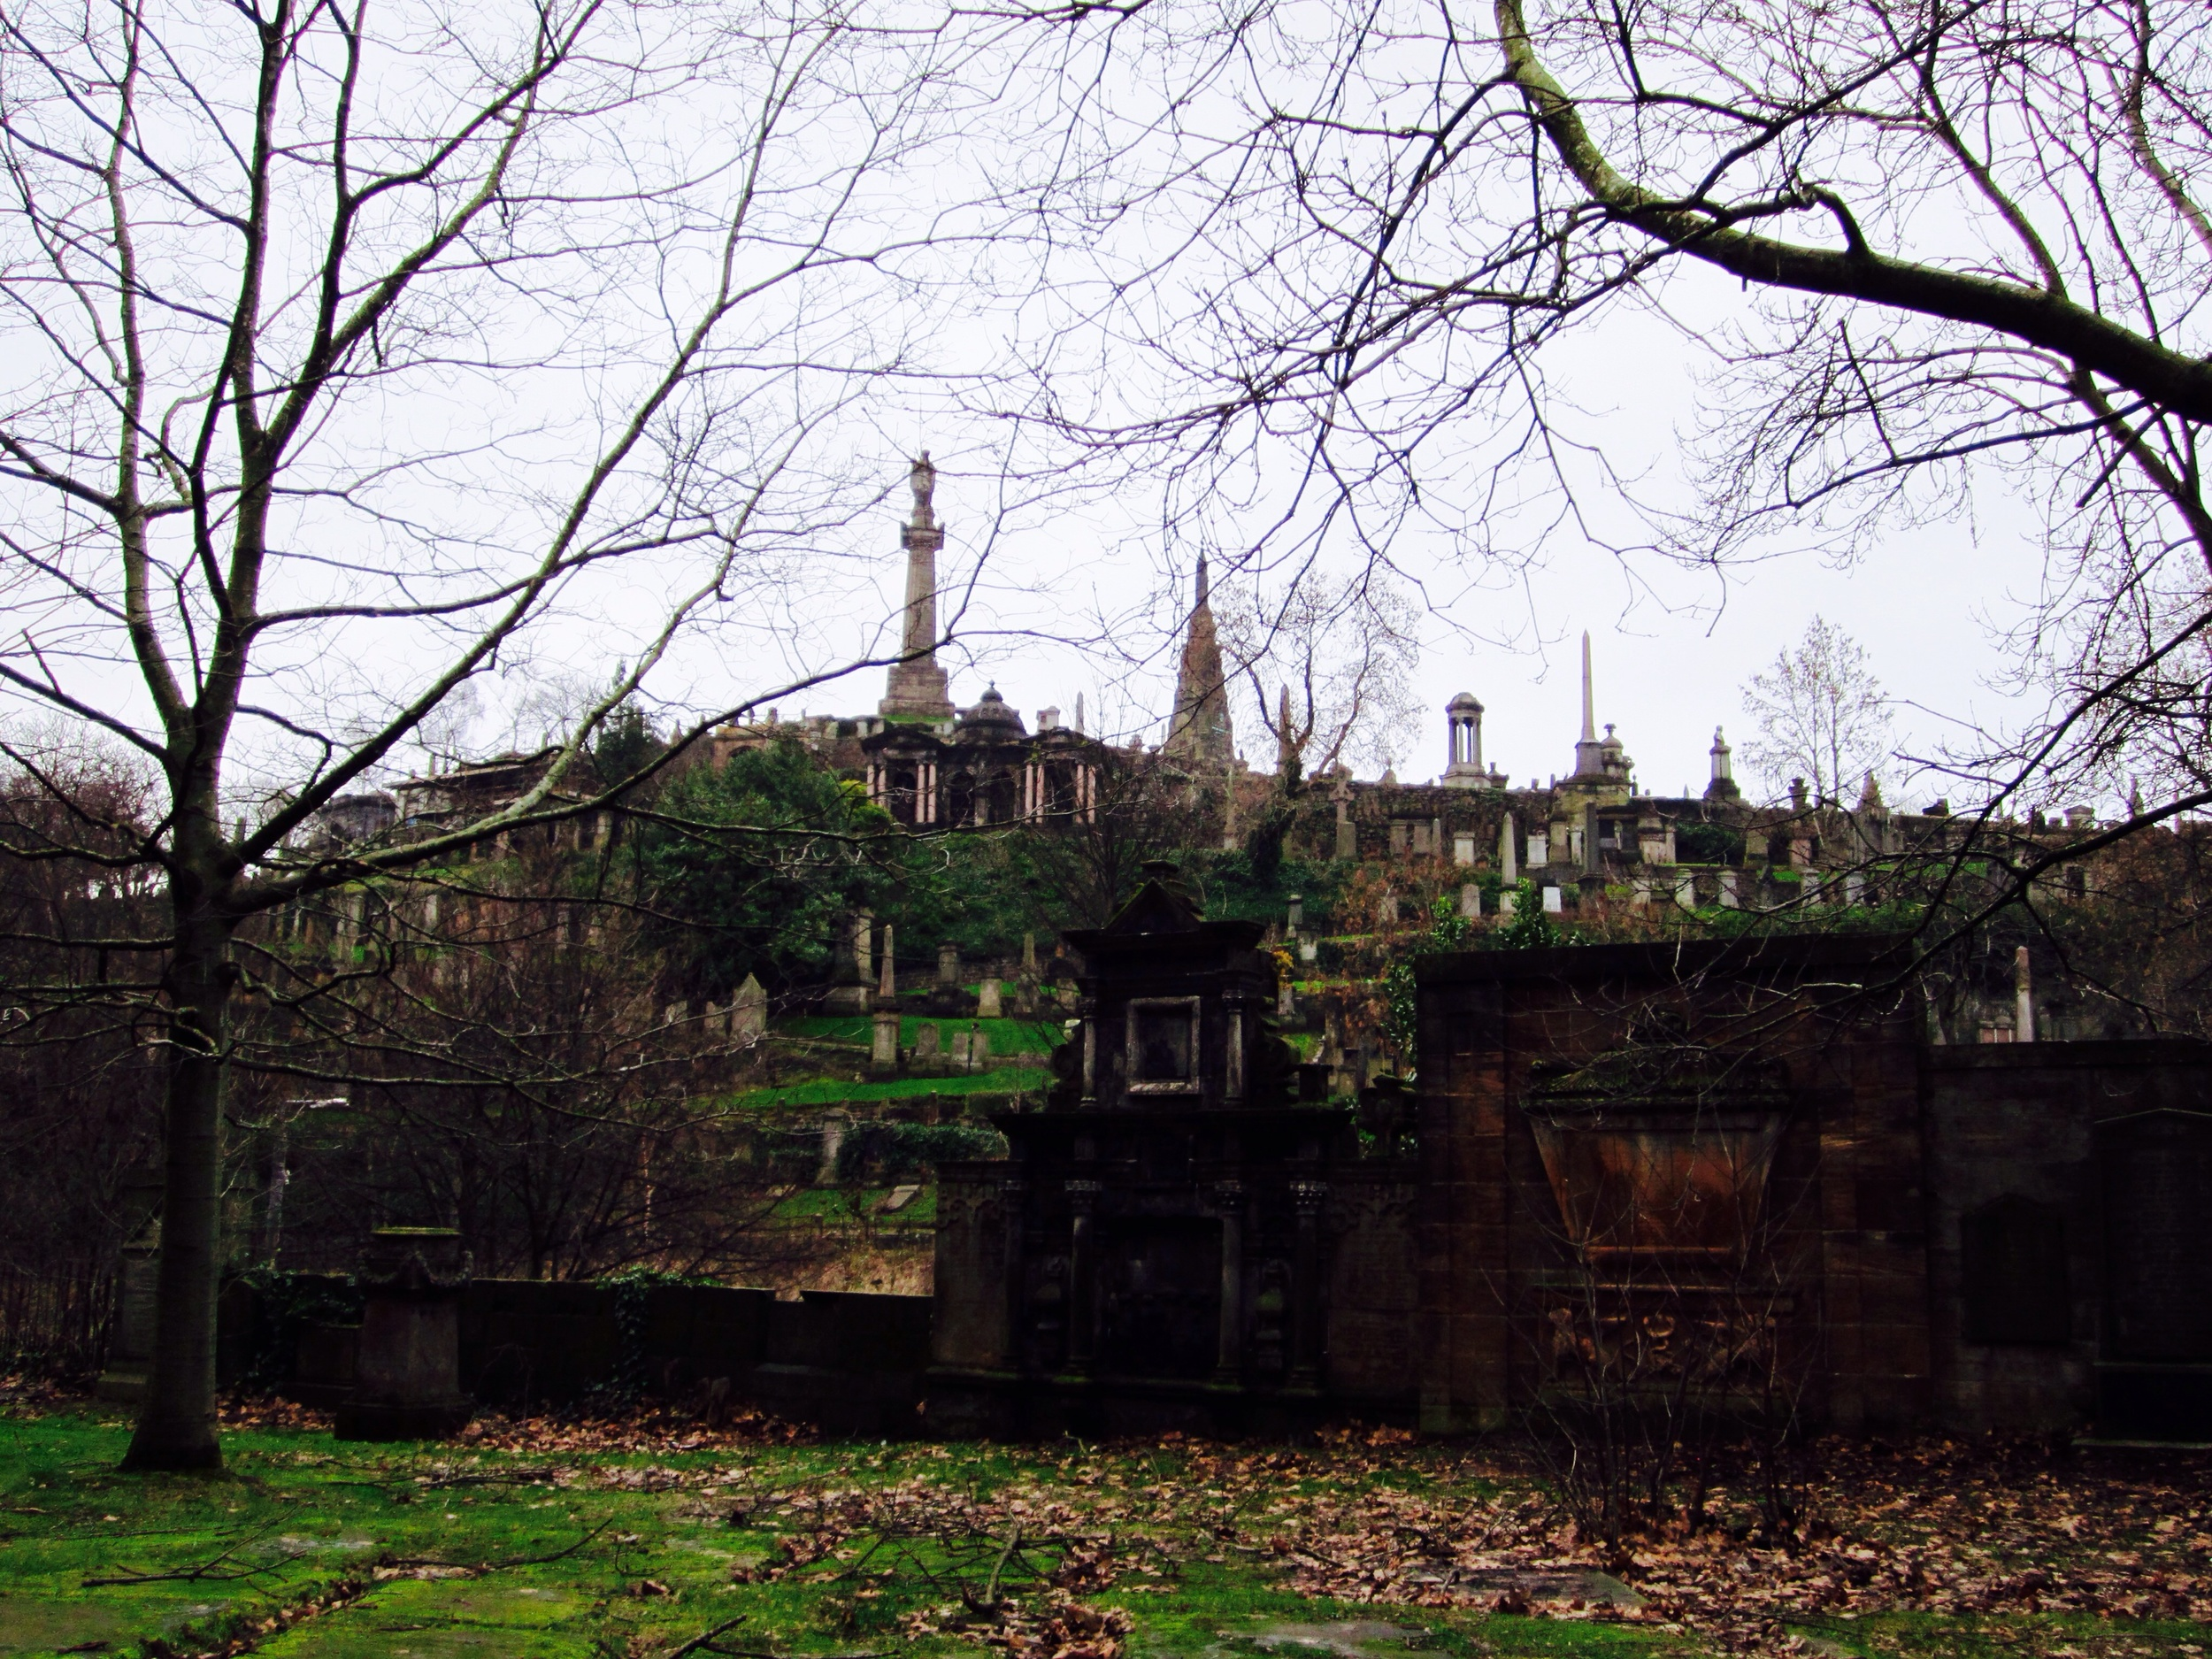 The Glasgow Necropolis is a Victorian garden cemetery adjacent to the cathedral.